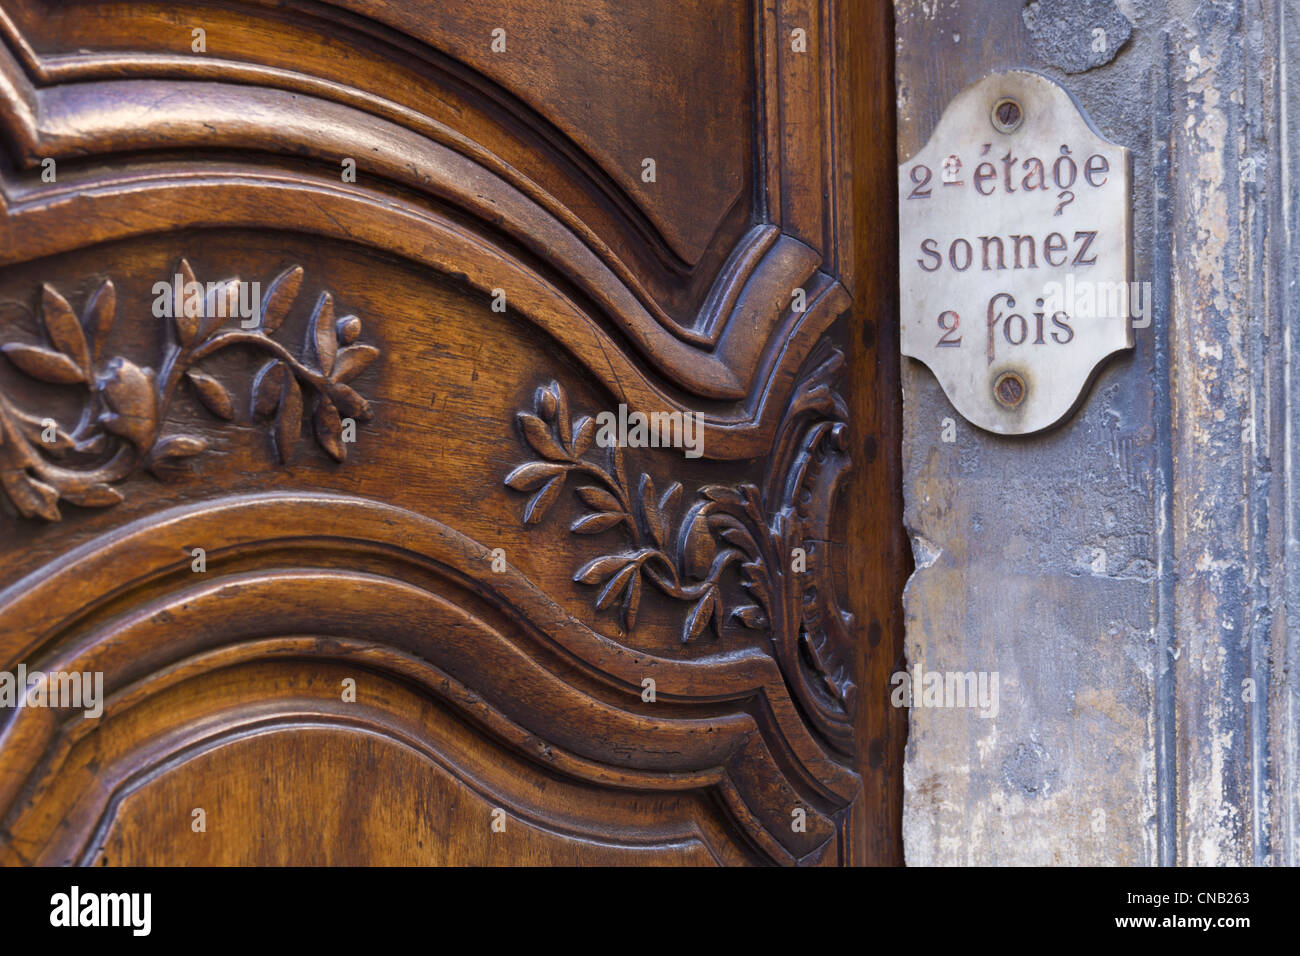 France, Bouches du Rhone, Arles, detail of a door - Stock Image